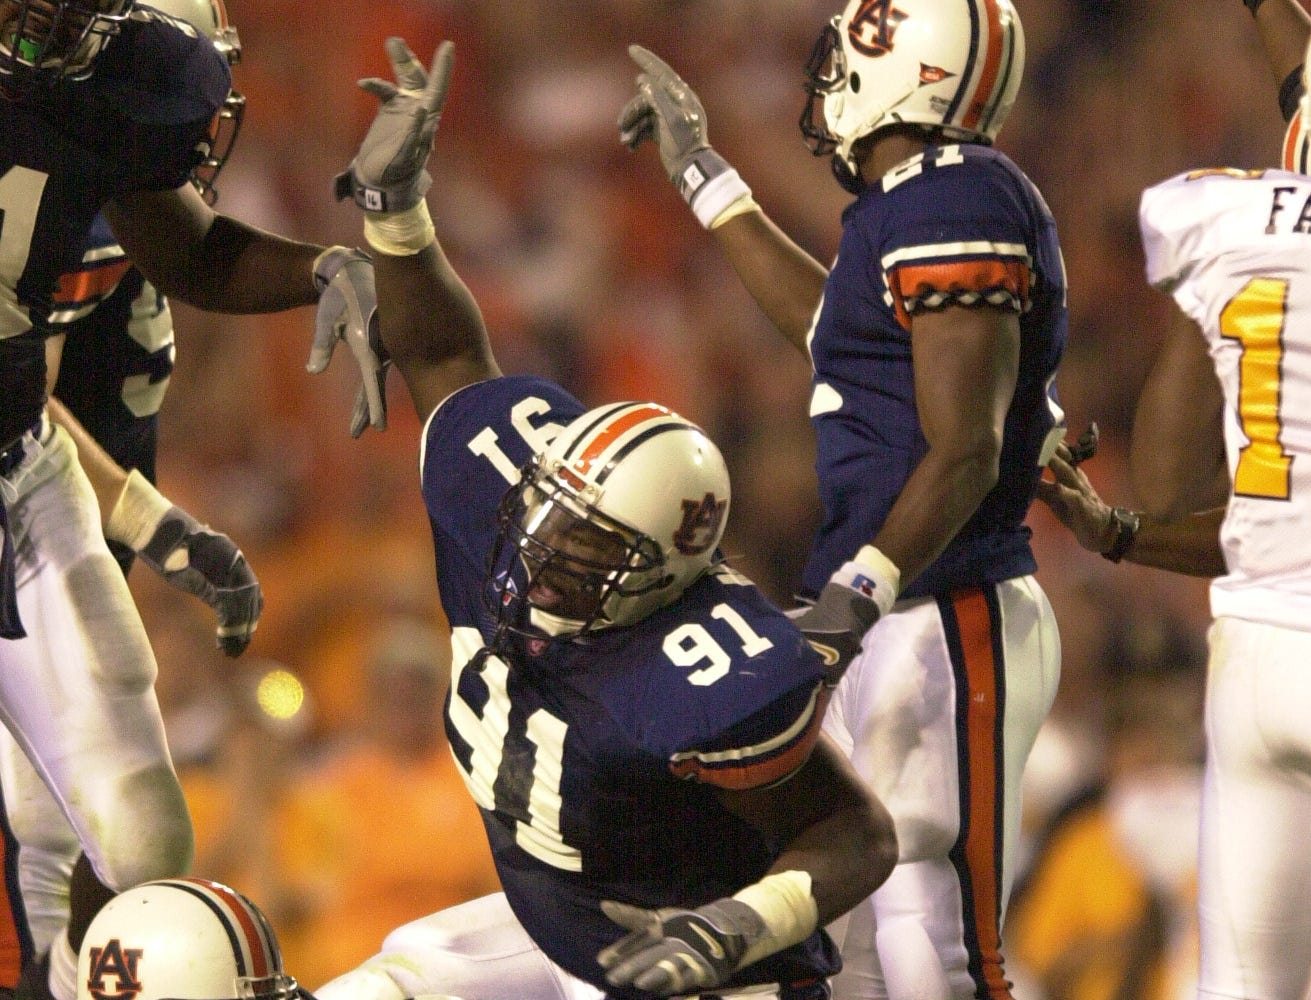 Auburn's DeMarco McNeil  (92) recovers a Vol turnover and stops a Tennessee drive on Saturday at Auburn.